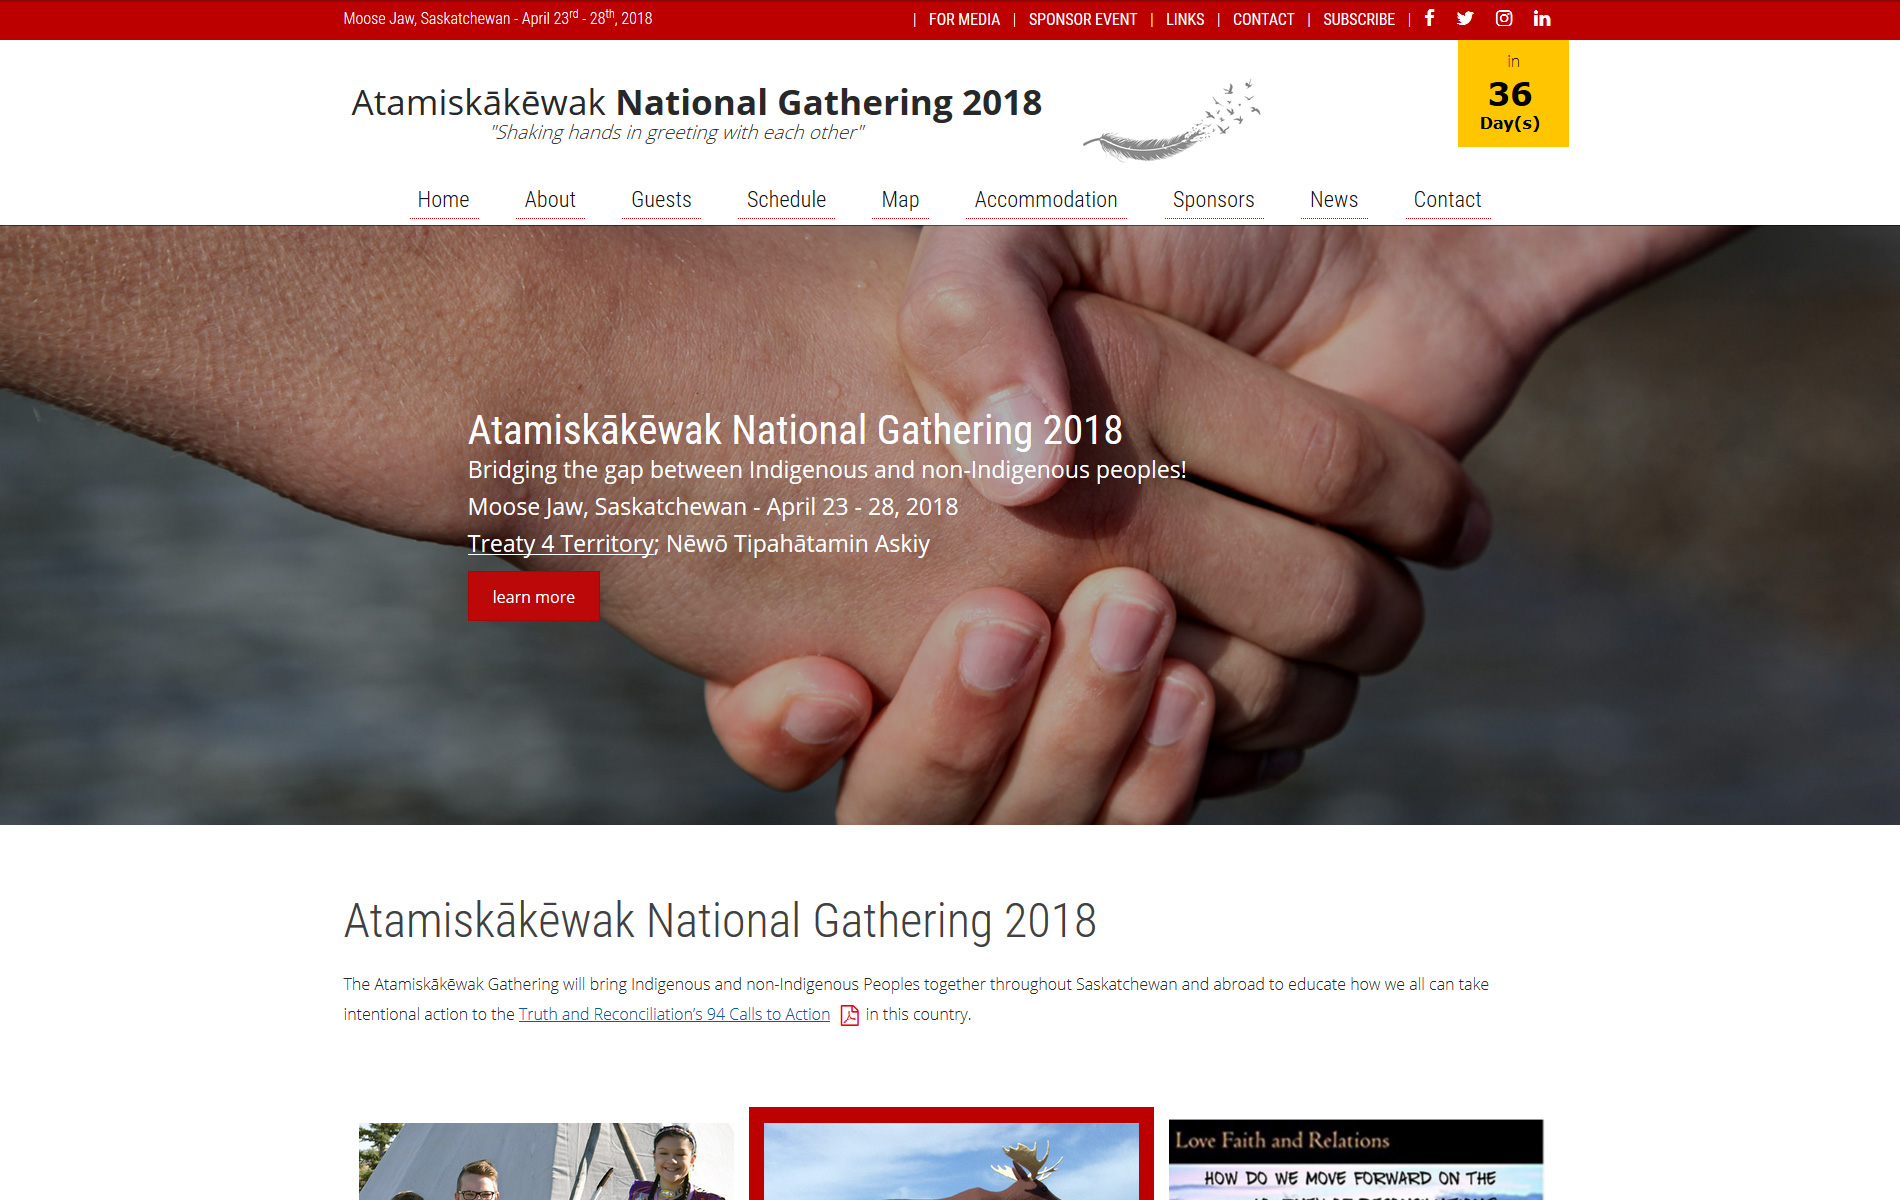 Atamiskākēwak National Gathering